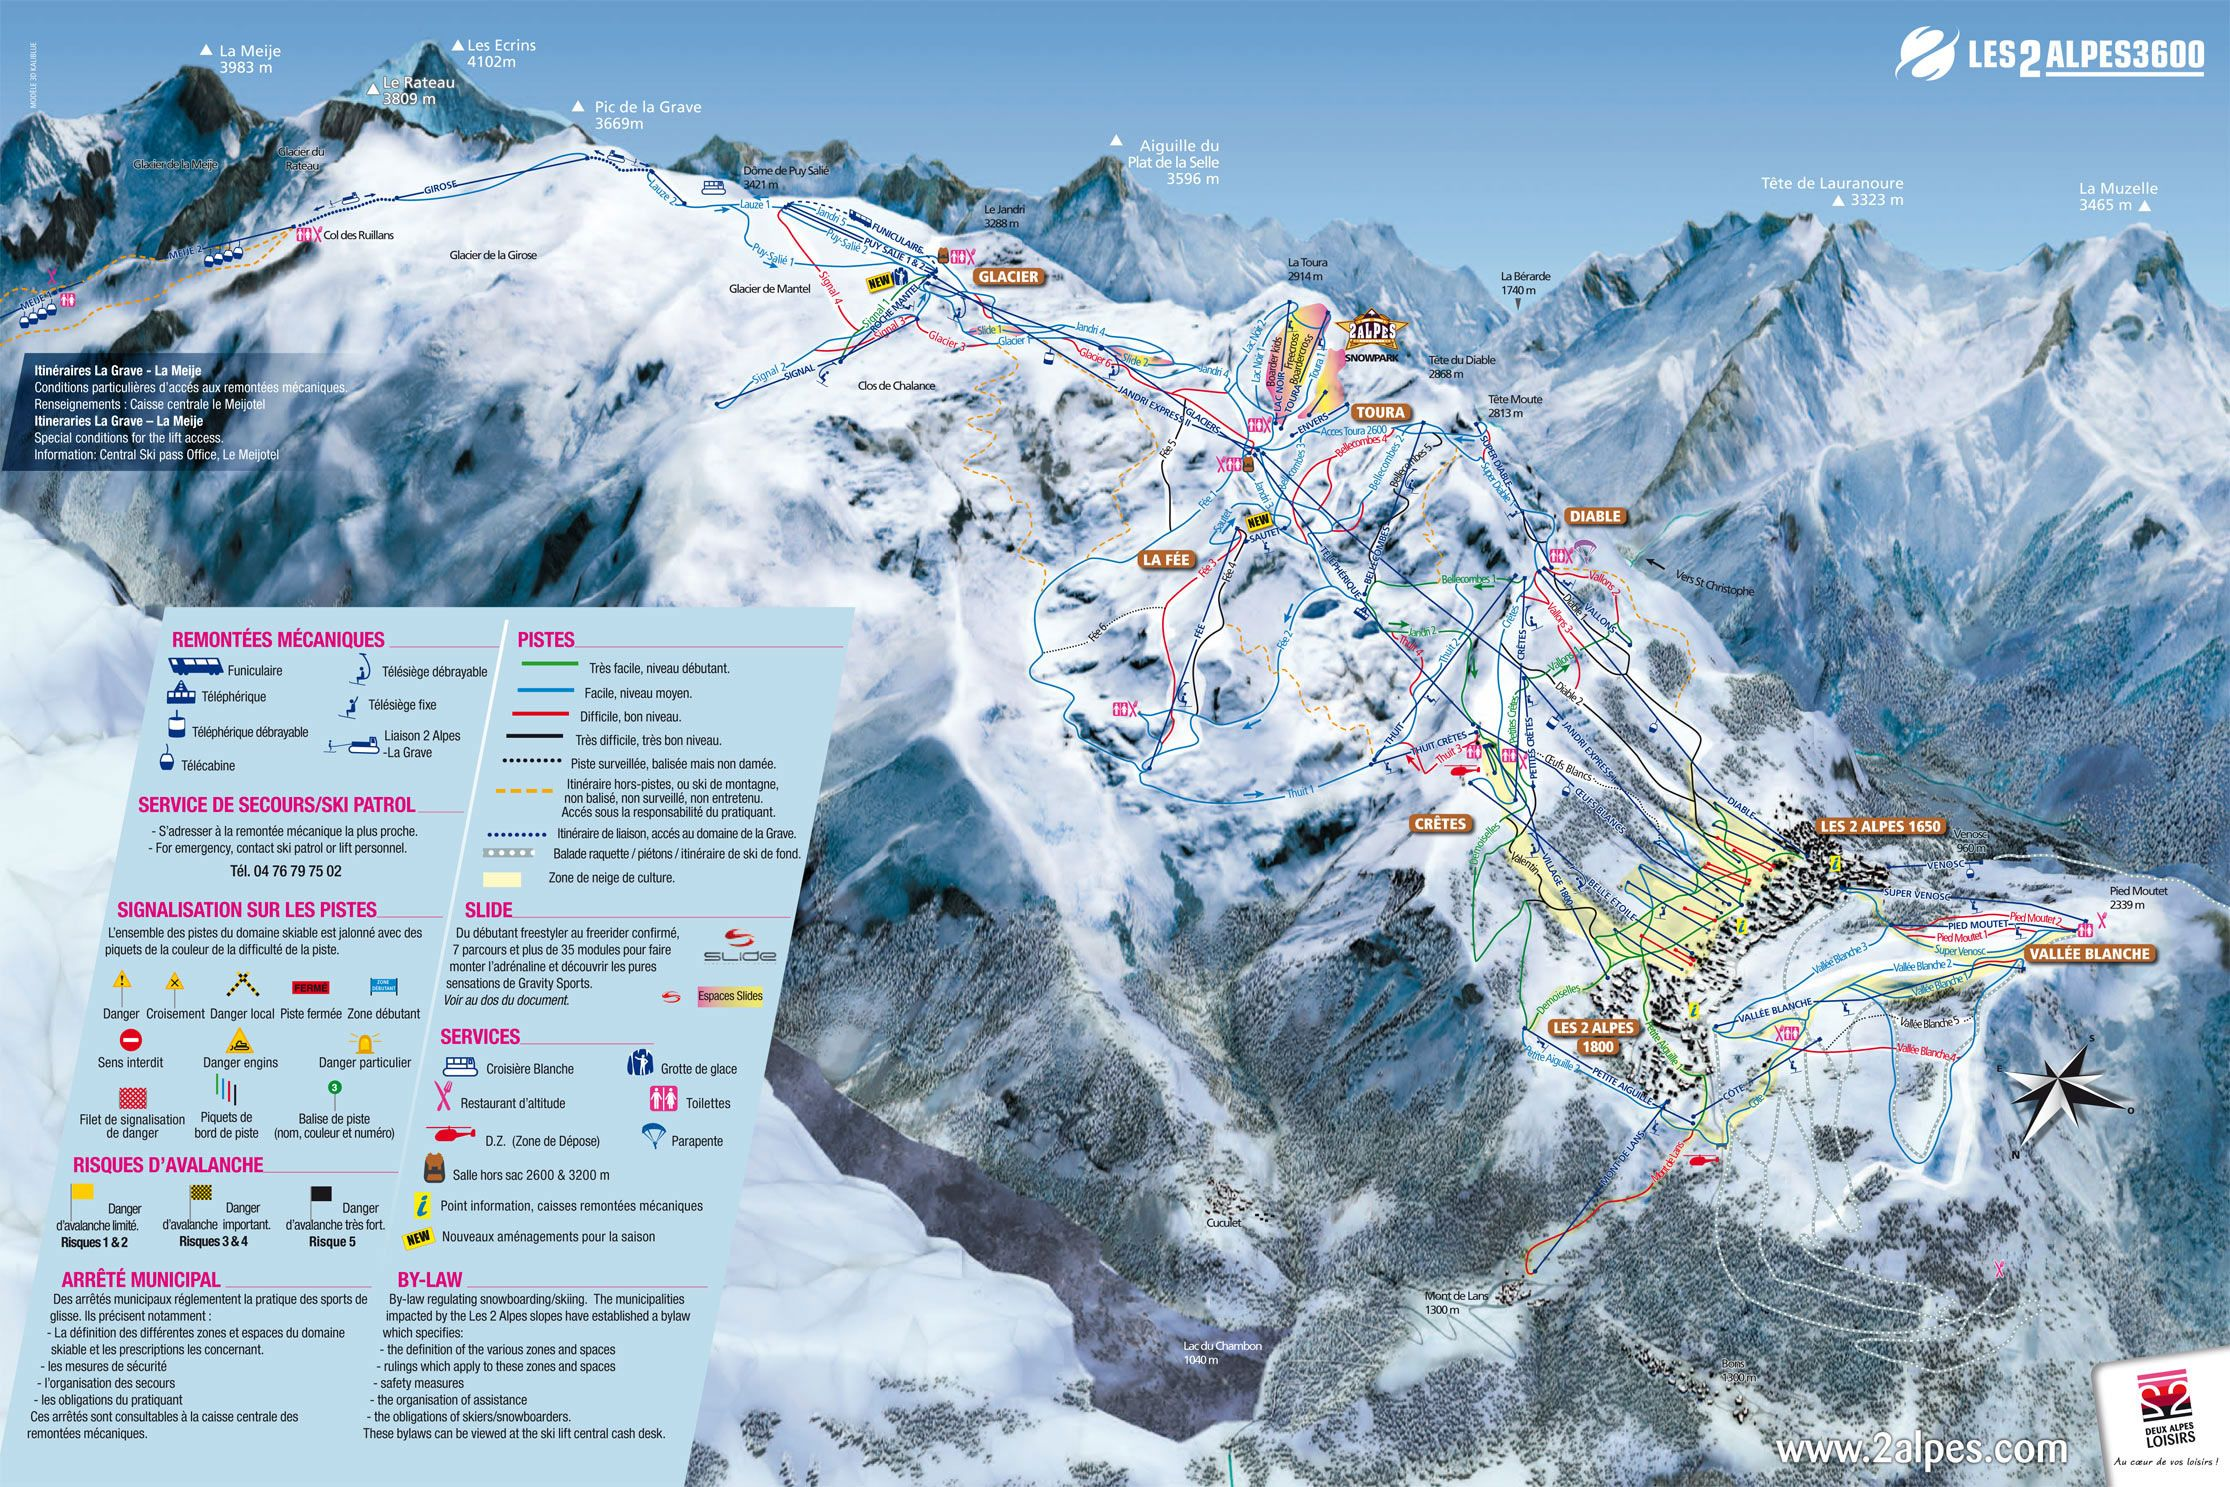 https://skitours.com.ua/sites/default/files/images/resorts/France/Les-Deux-Alpes/Les_Deux_Alpes_Piste_Map.jpg